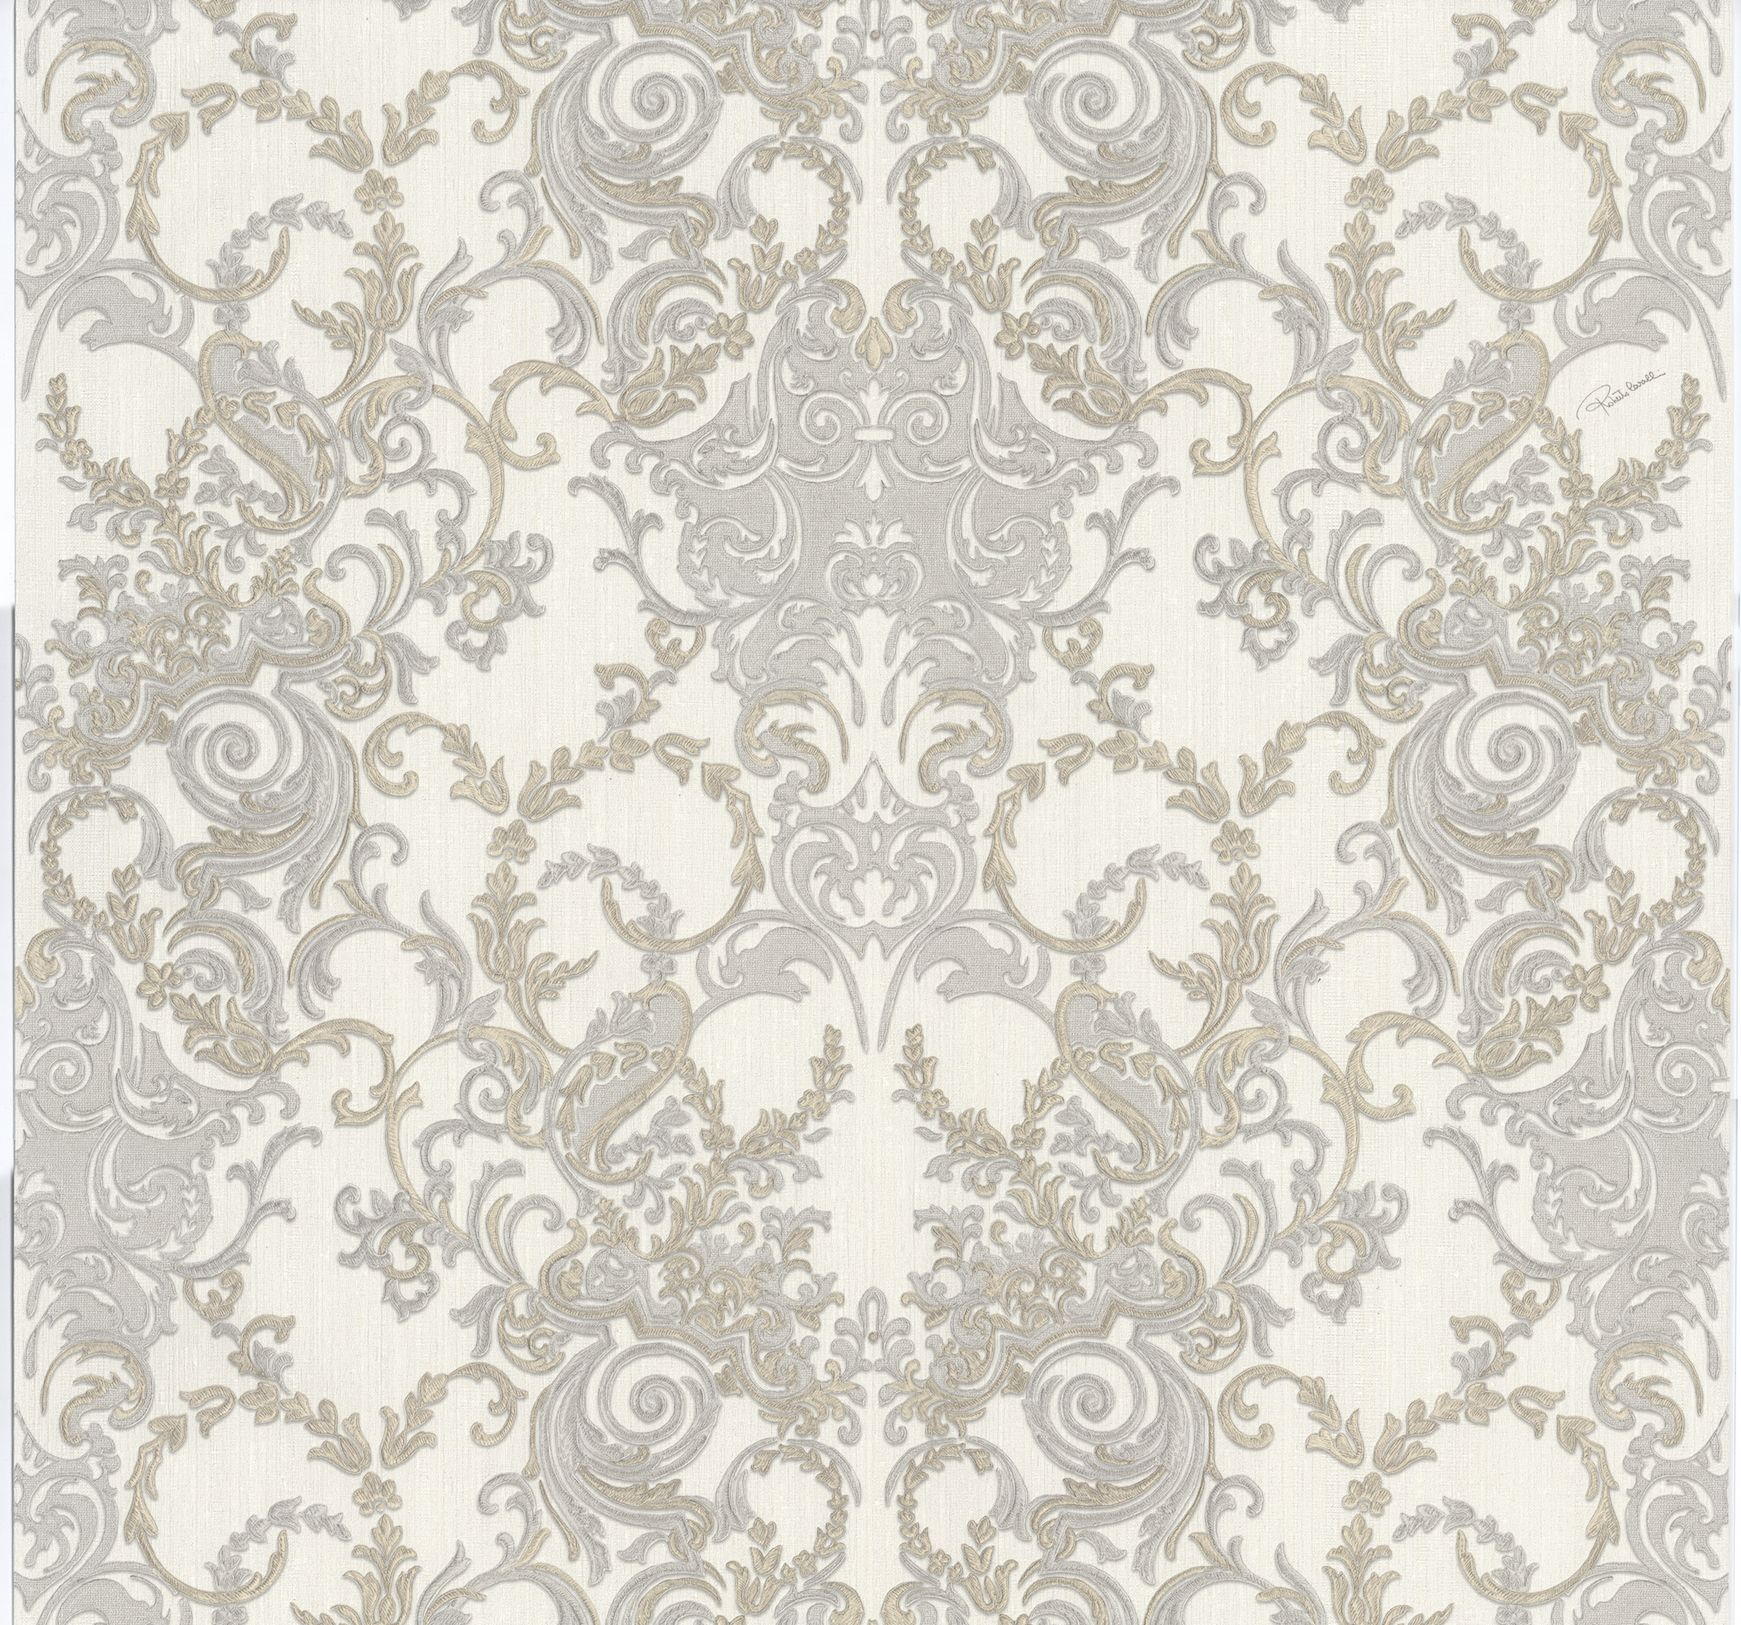 Roberto Cavalli Wallpaper   See more at Kings of Chelsea the 1741x1625